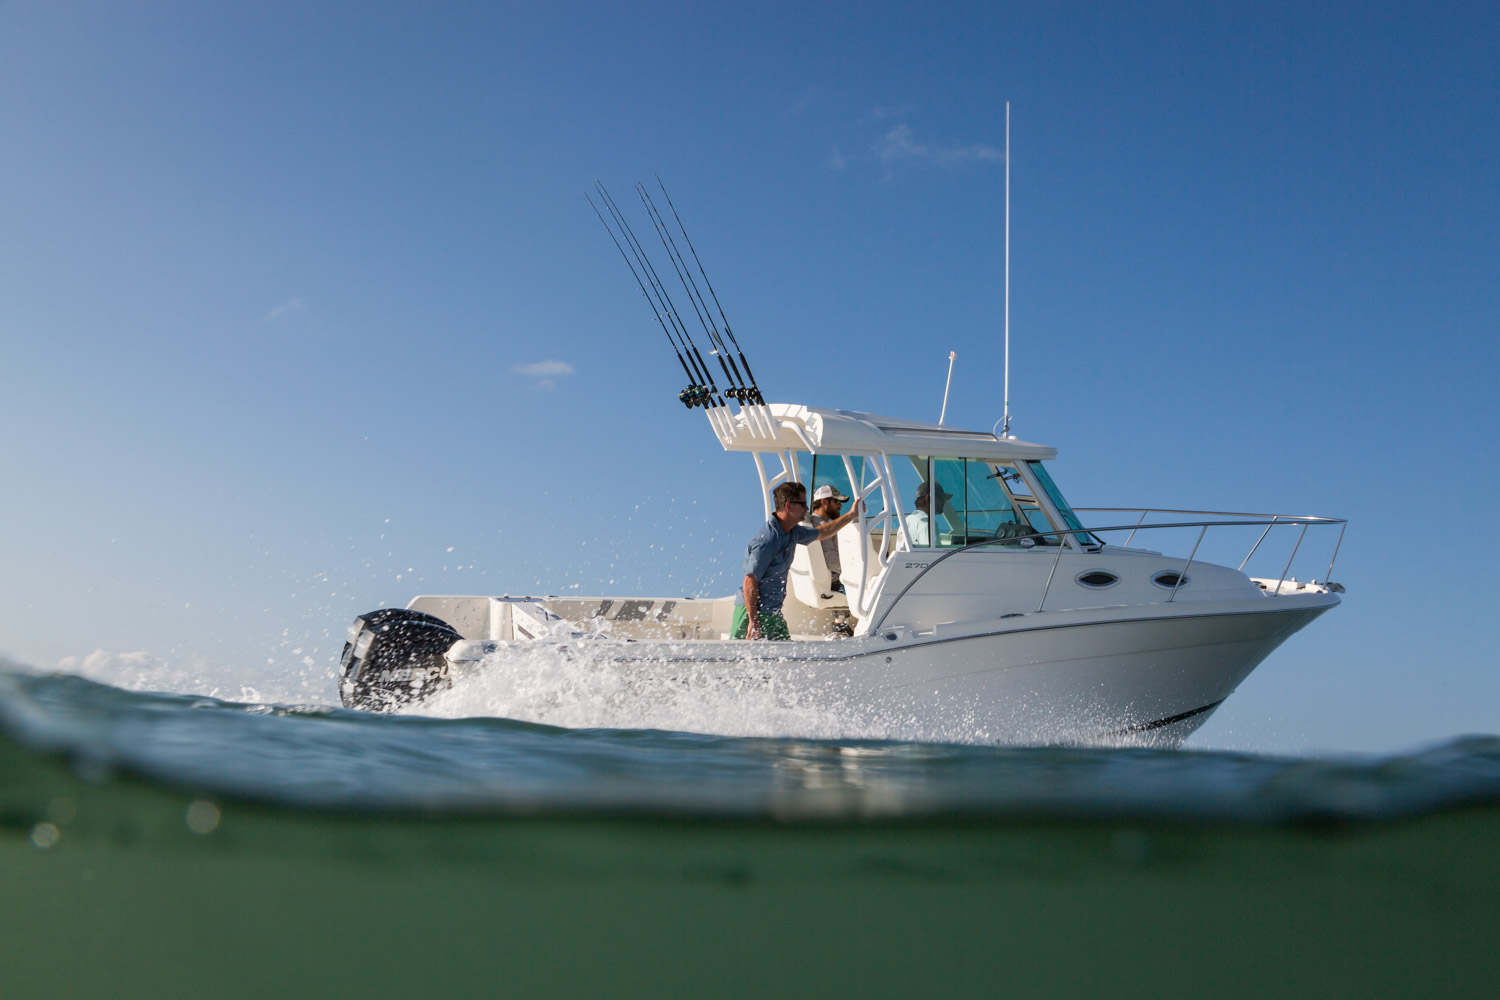 Boat fishing boating luxury yacht marine lifestyle Florida photographer Steinberger Boat boating  luxury yacht marine lifestyle photographer Steinberger shoots in Florida, Minnesota, Wisconsin, Tennessee, worldwide